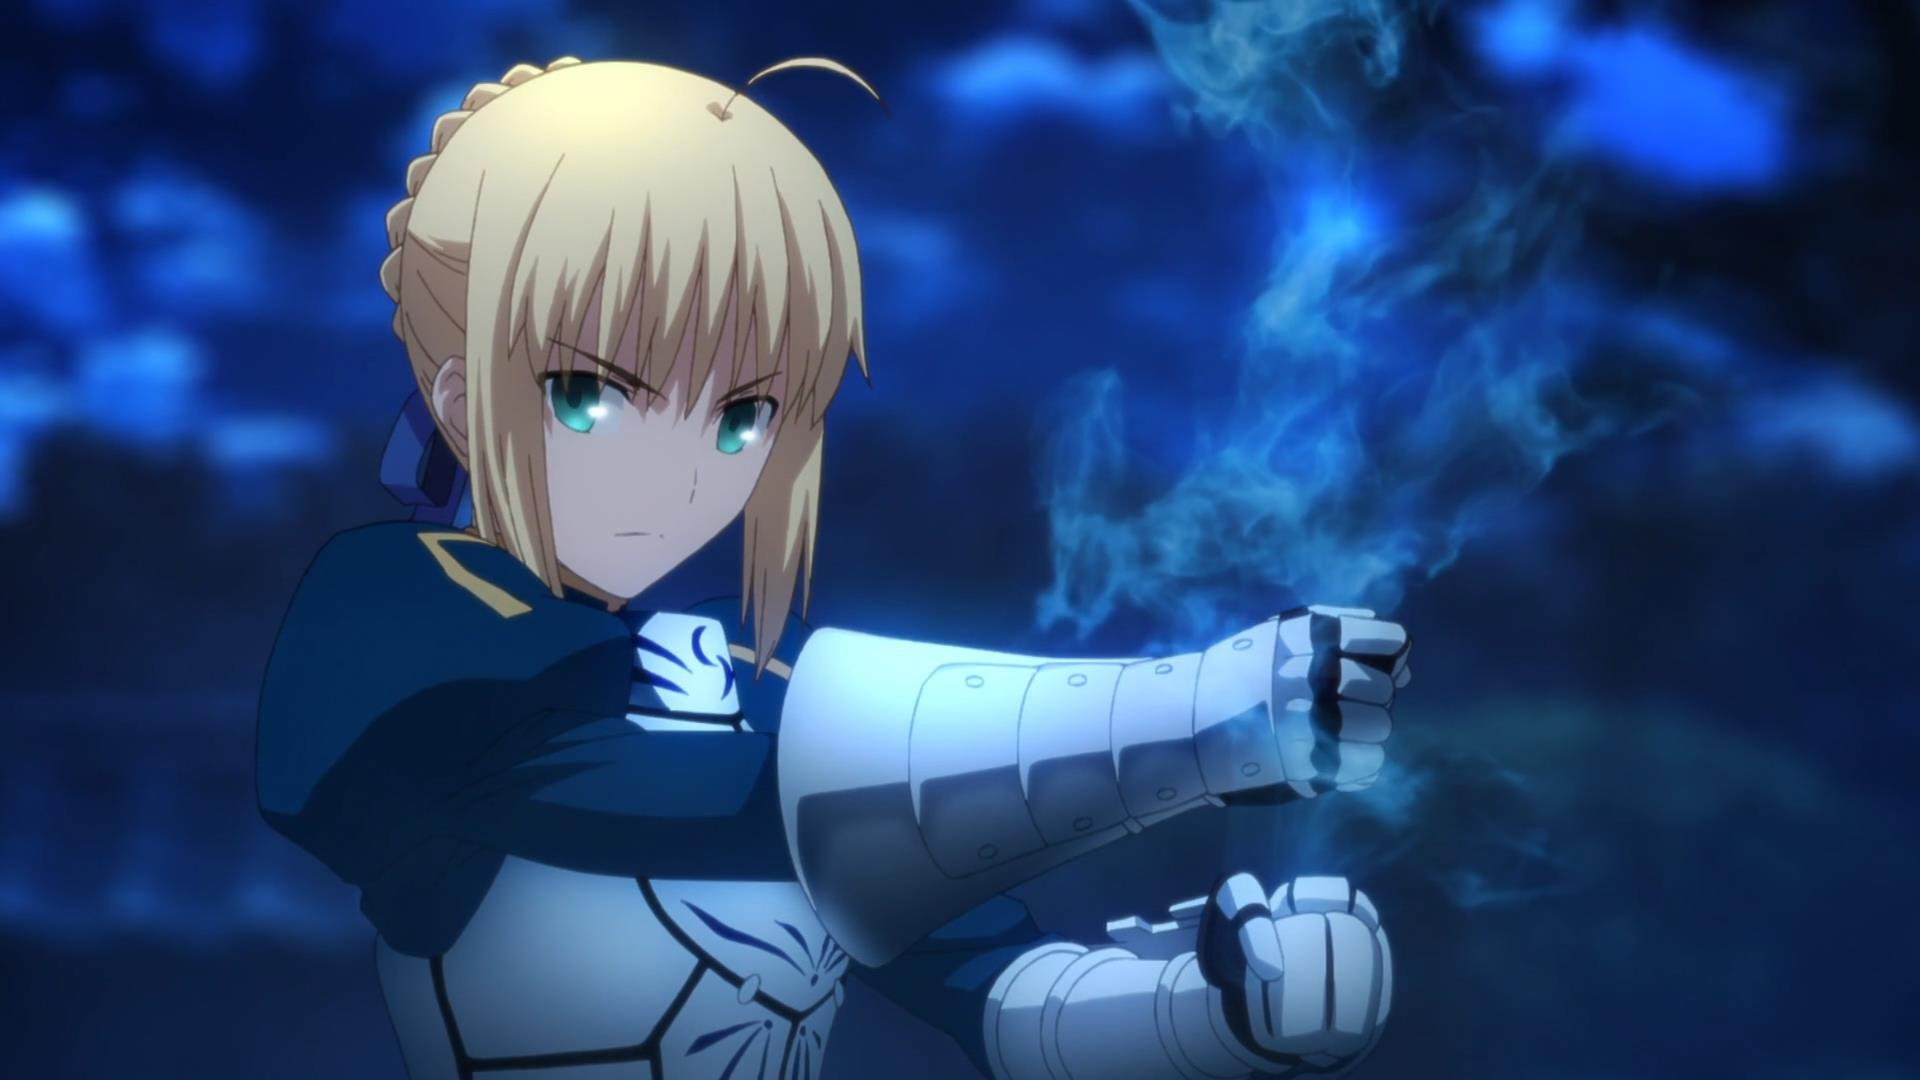 Saber Fate Stay Night Fate Stay Night Saber 3084701 Hd Wallpaper Backgrounds Download